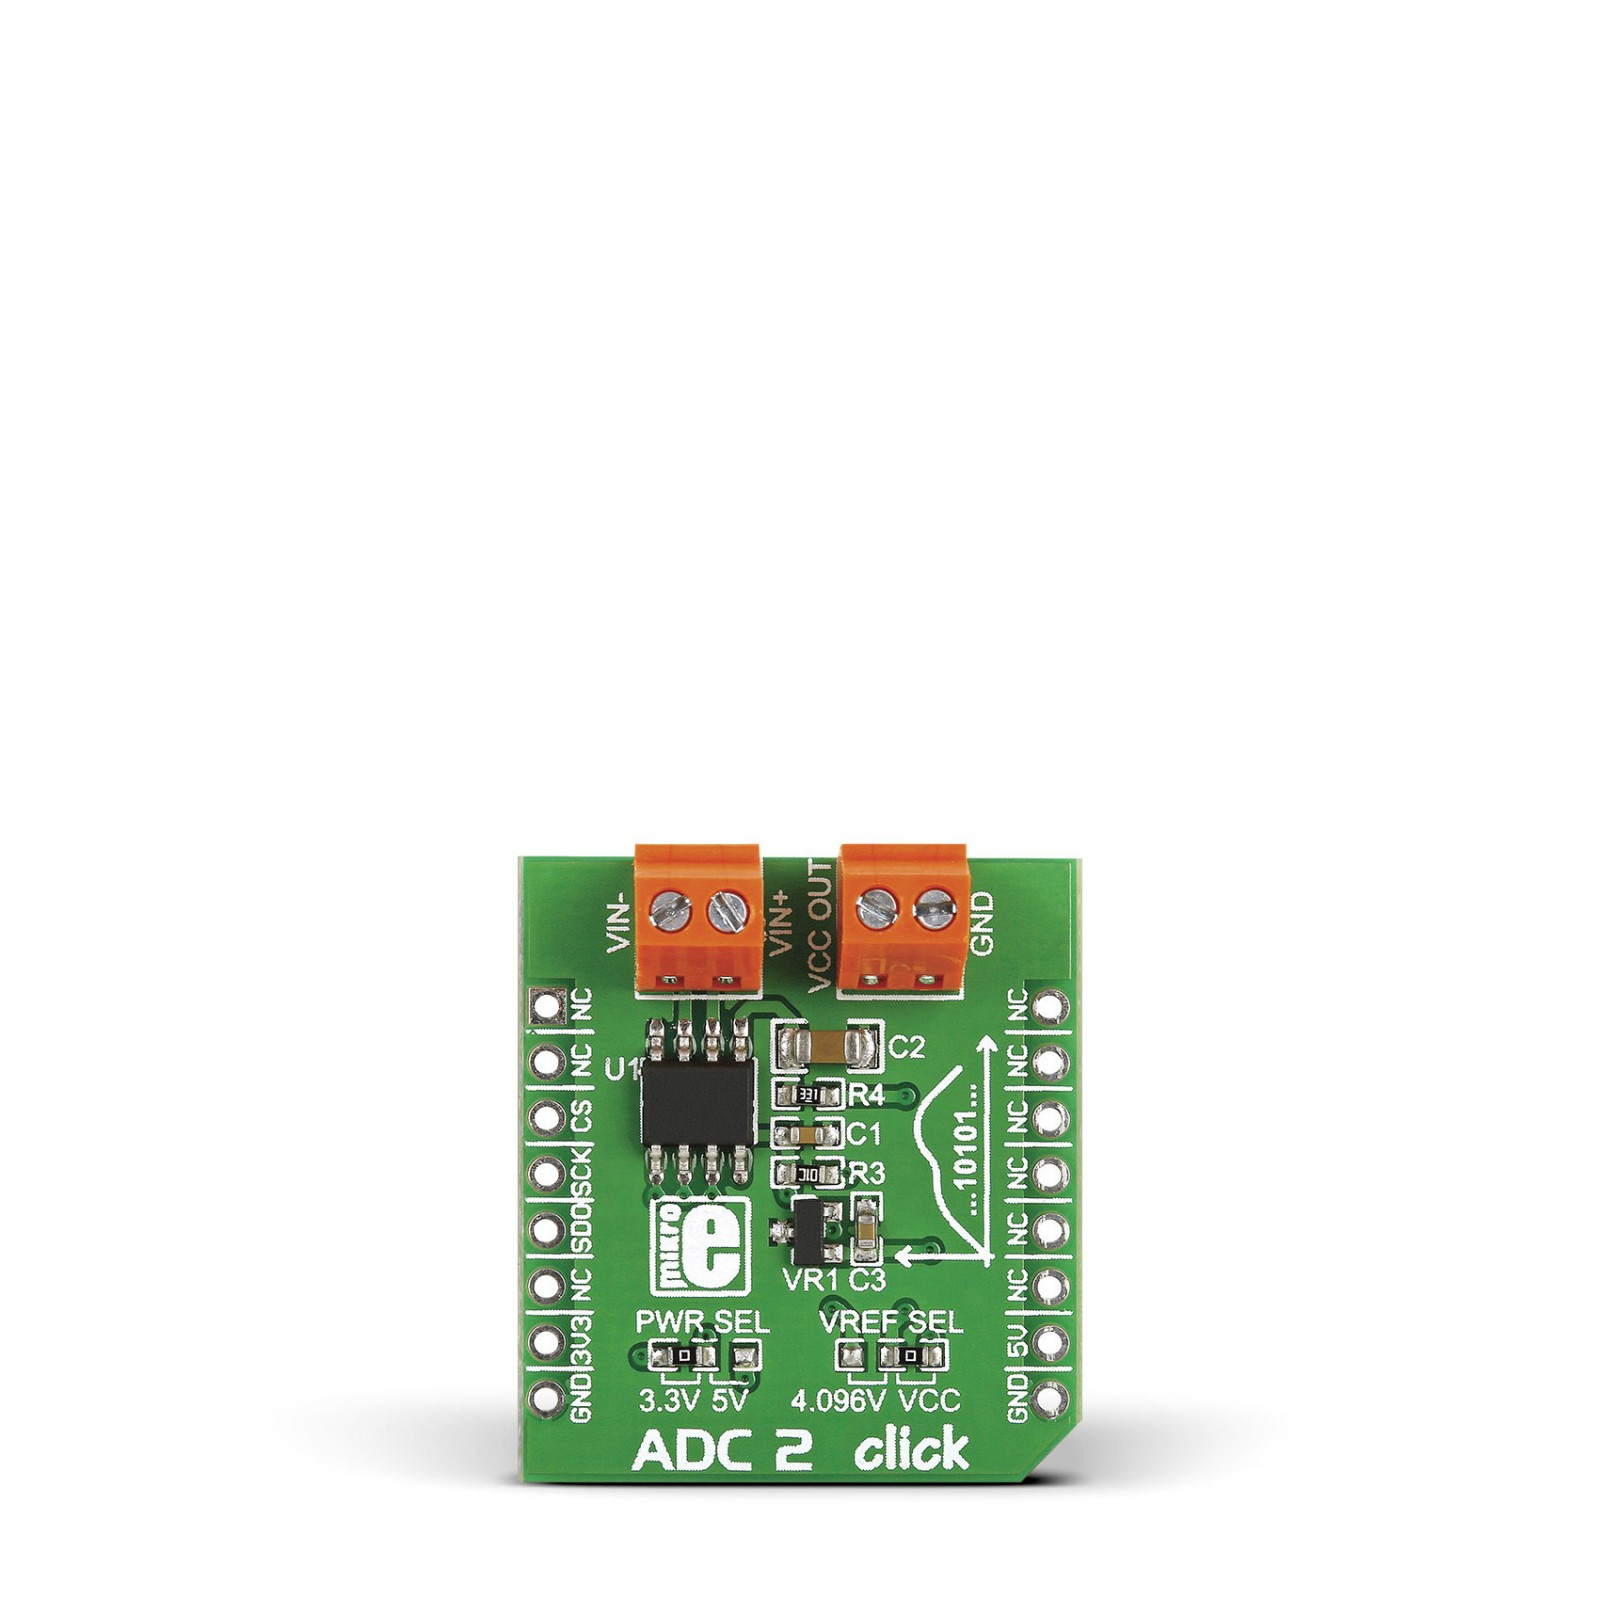 ADC 2 click — board with MCP3551/3 22-bit ADC